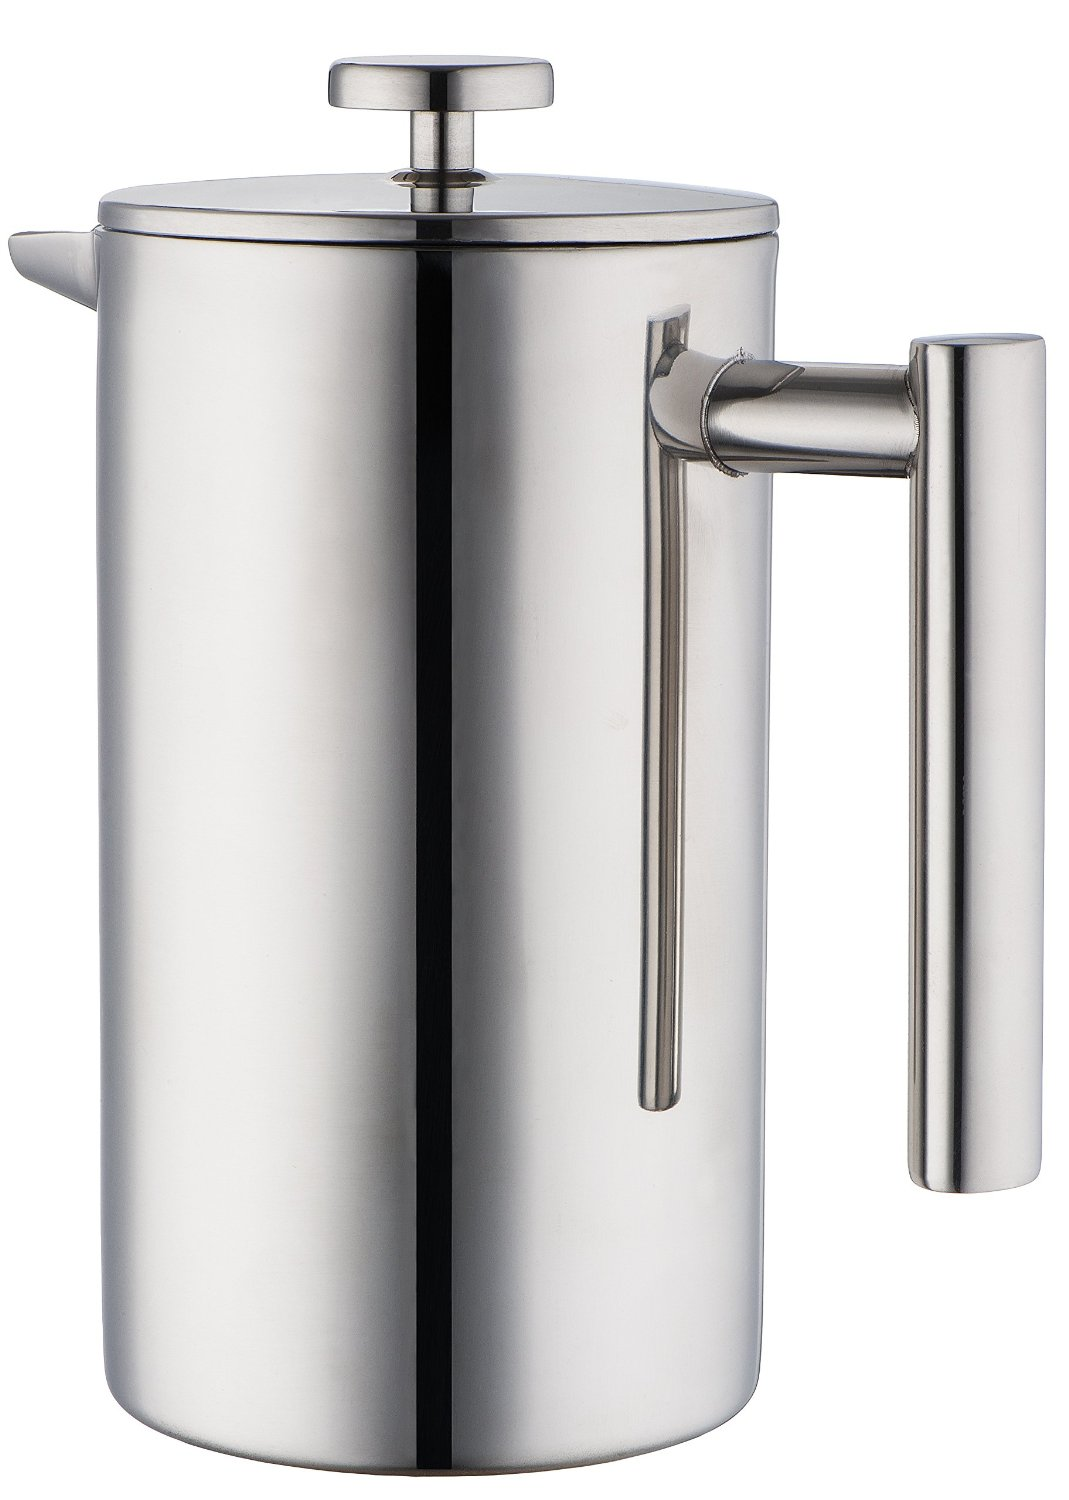 MIRA Stainless Steel French Press Coffee Maker | Double Walled Insulated Coffee & Tea Brewer Pot & Maker | Keeps Brewed Coffee or Tea Hot | 20 Oz (600 ml)